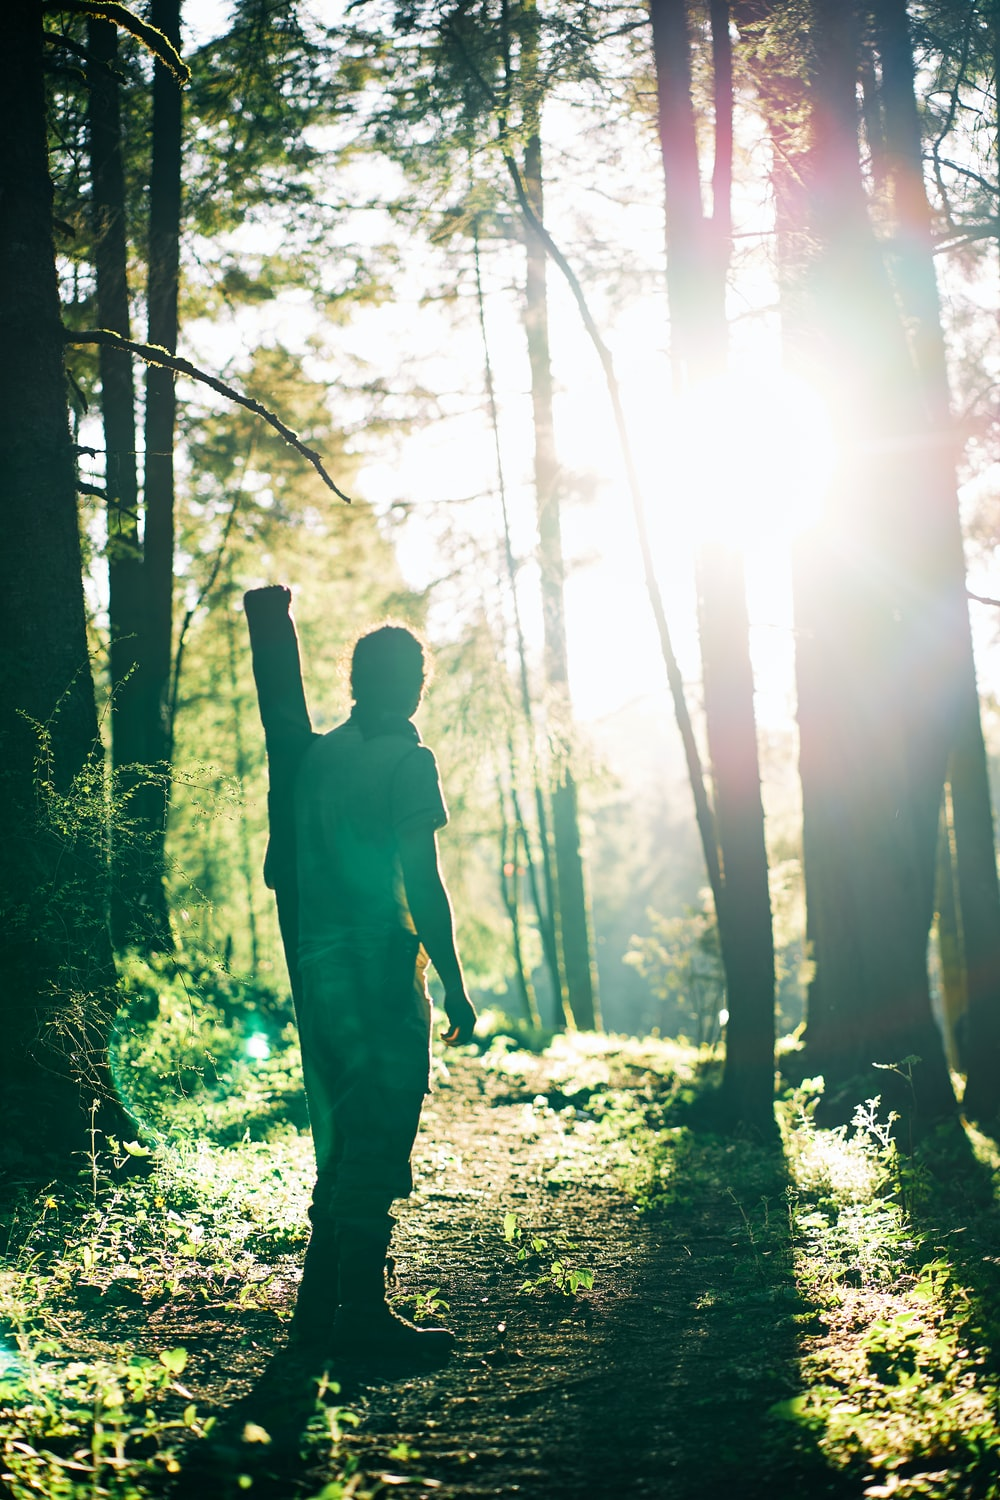 silhouette of man standing in forest during daytime